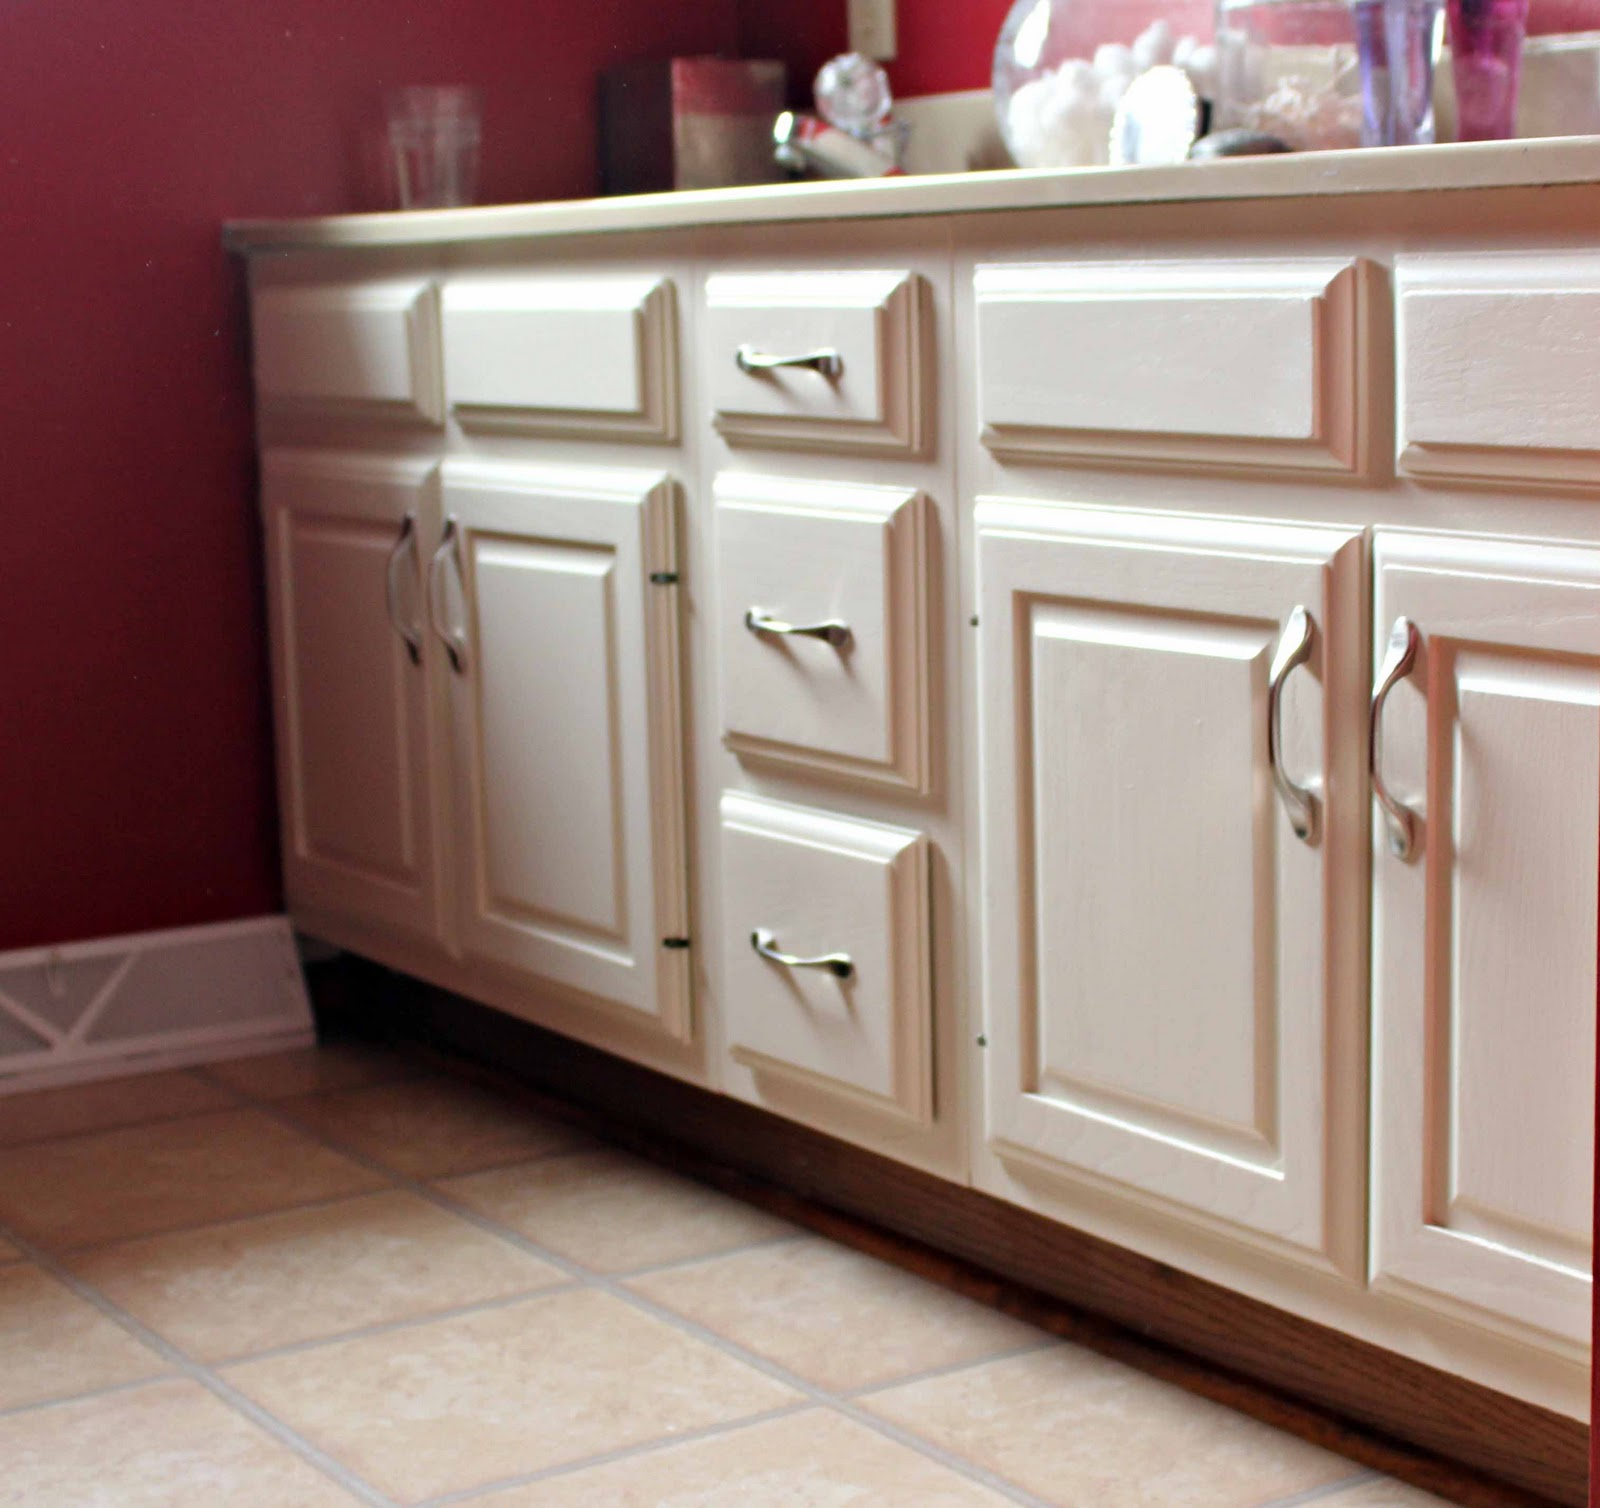 Great ideas diy inspiration 4 Paint bathroom cabinets